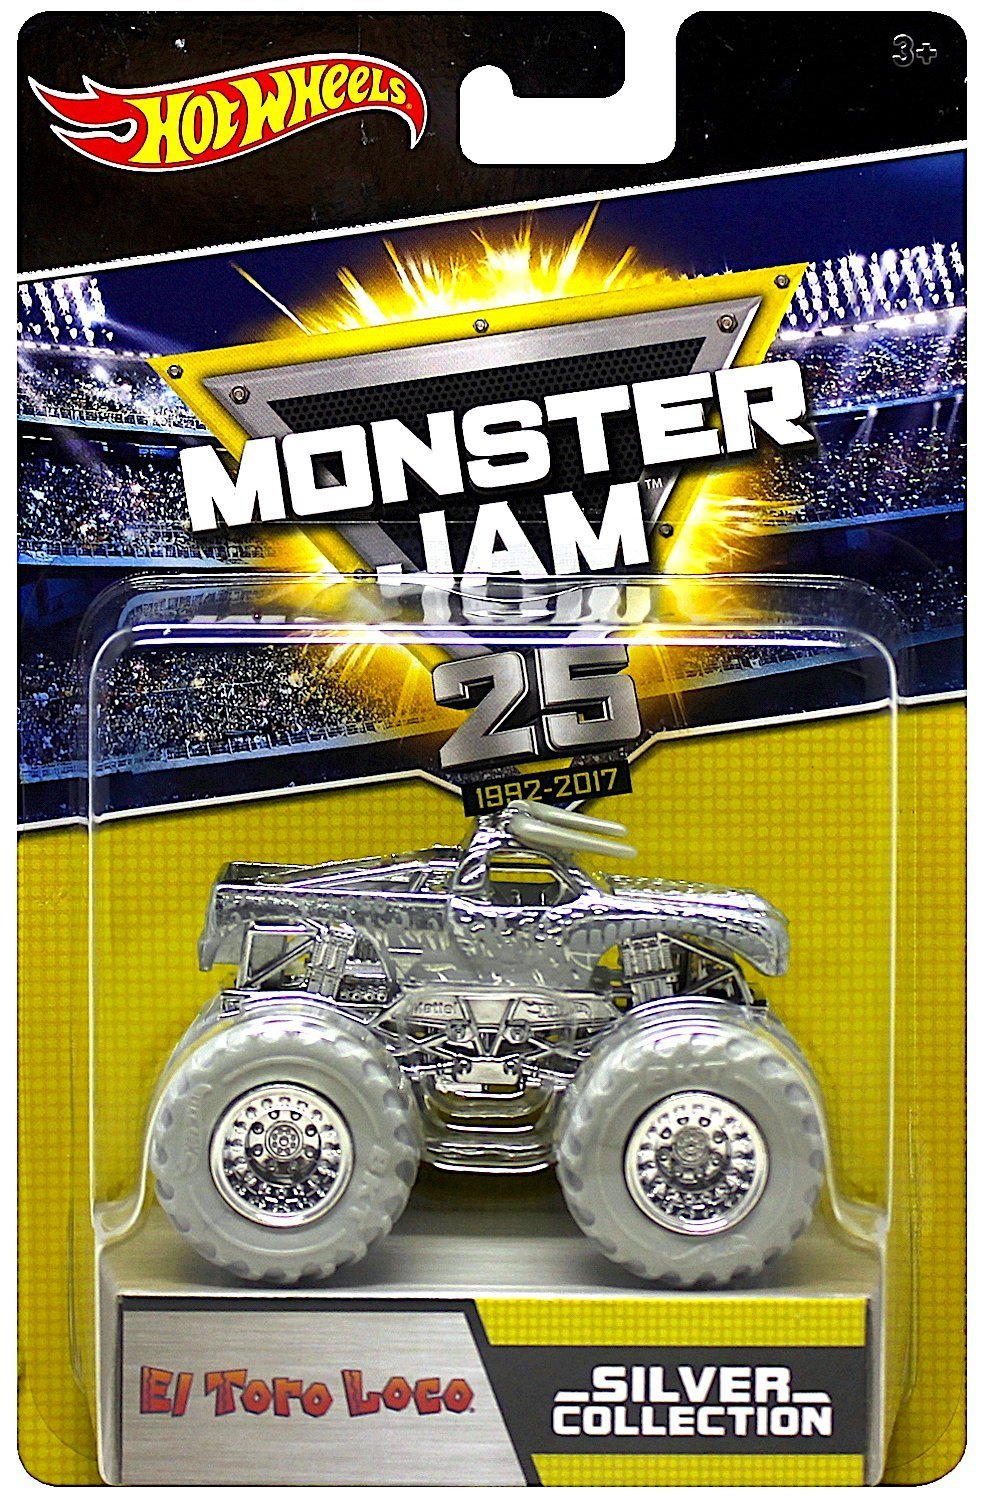 Hot Wheels: 1:64 Monster Jam Anniversary Vehicle   Toy   at Mighty ...